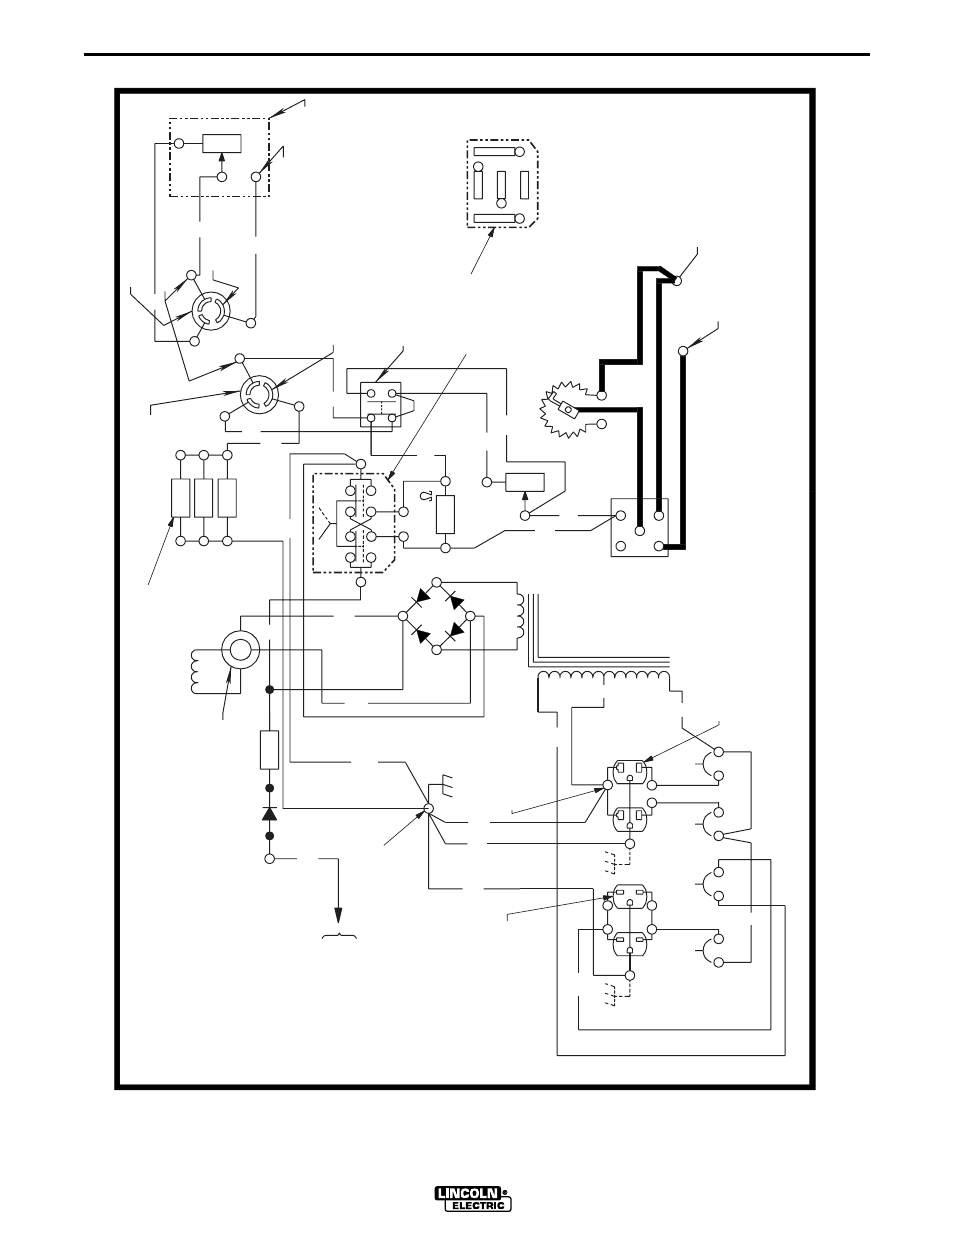 lincoln 225 wiring diagram wiring diagram yerlincoln electric ac 225 wiring diagram wiring diagram official lincoln [ 954 x 1235 Pixel ]